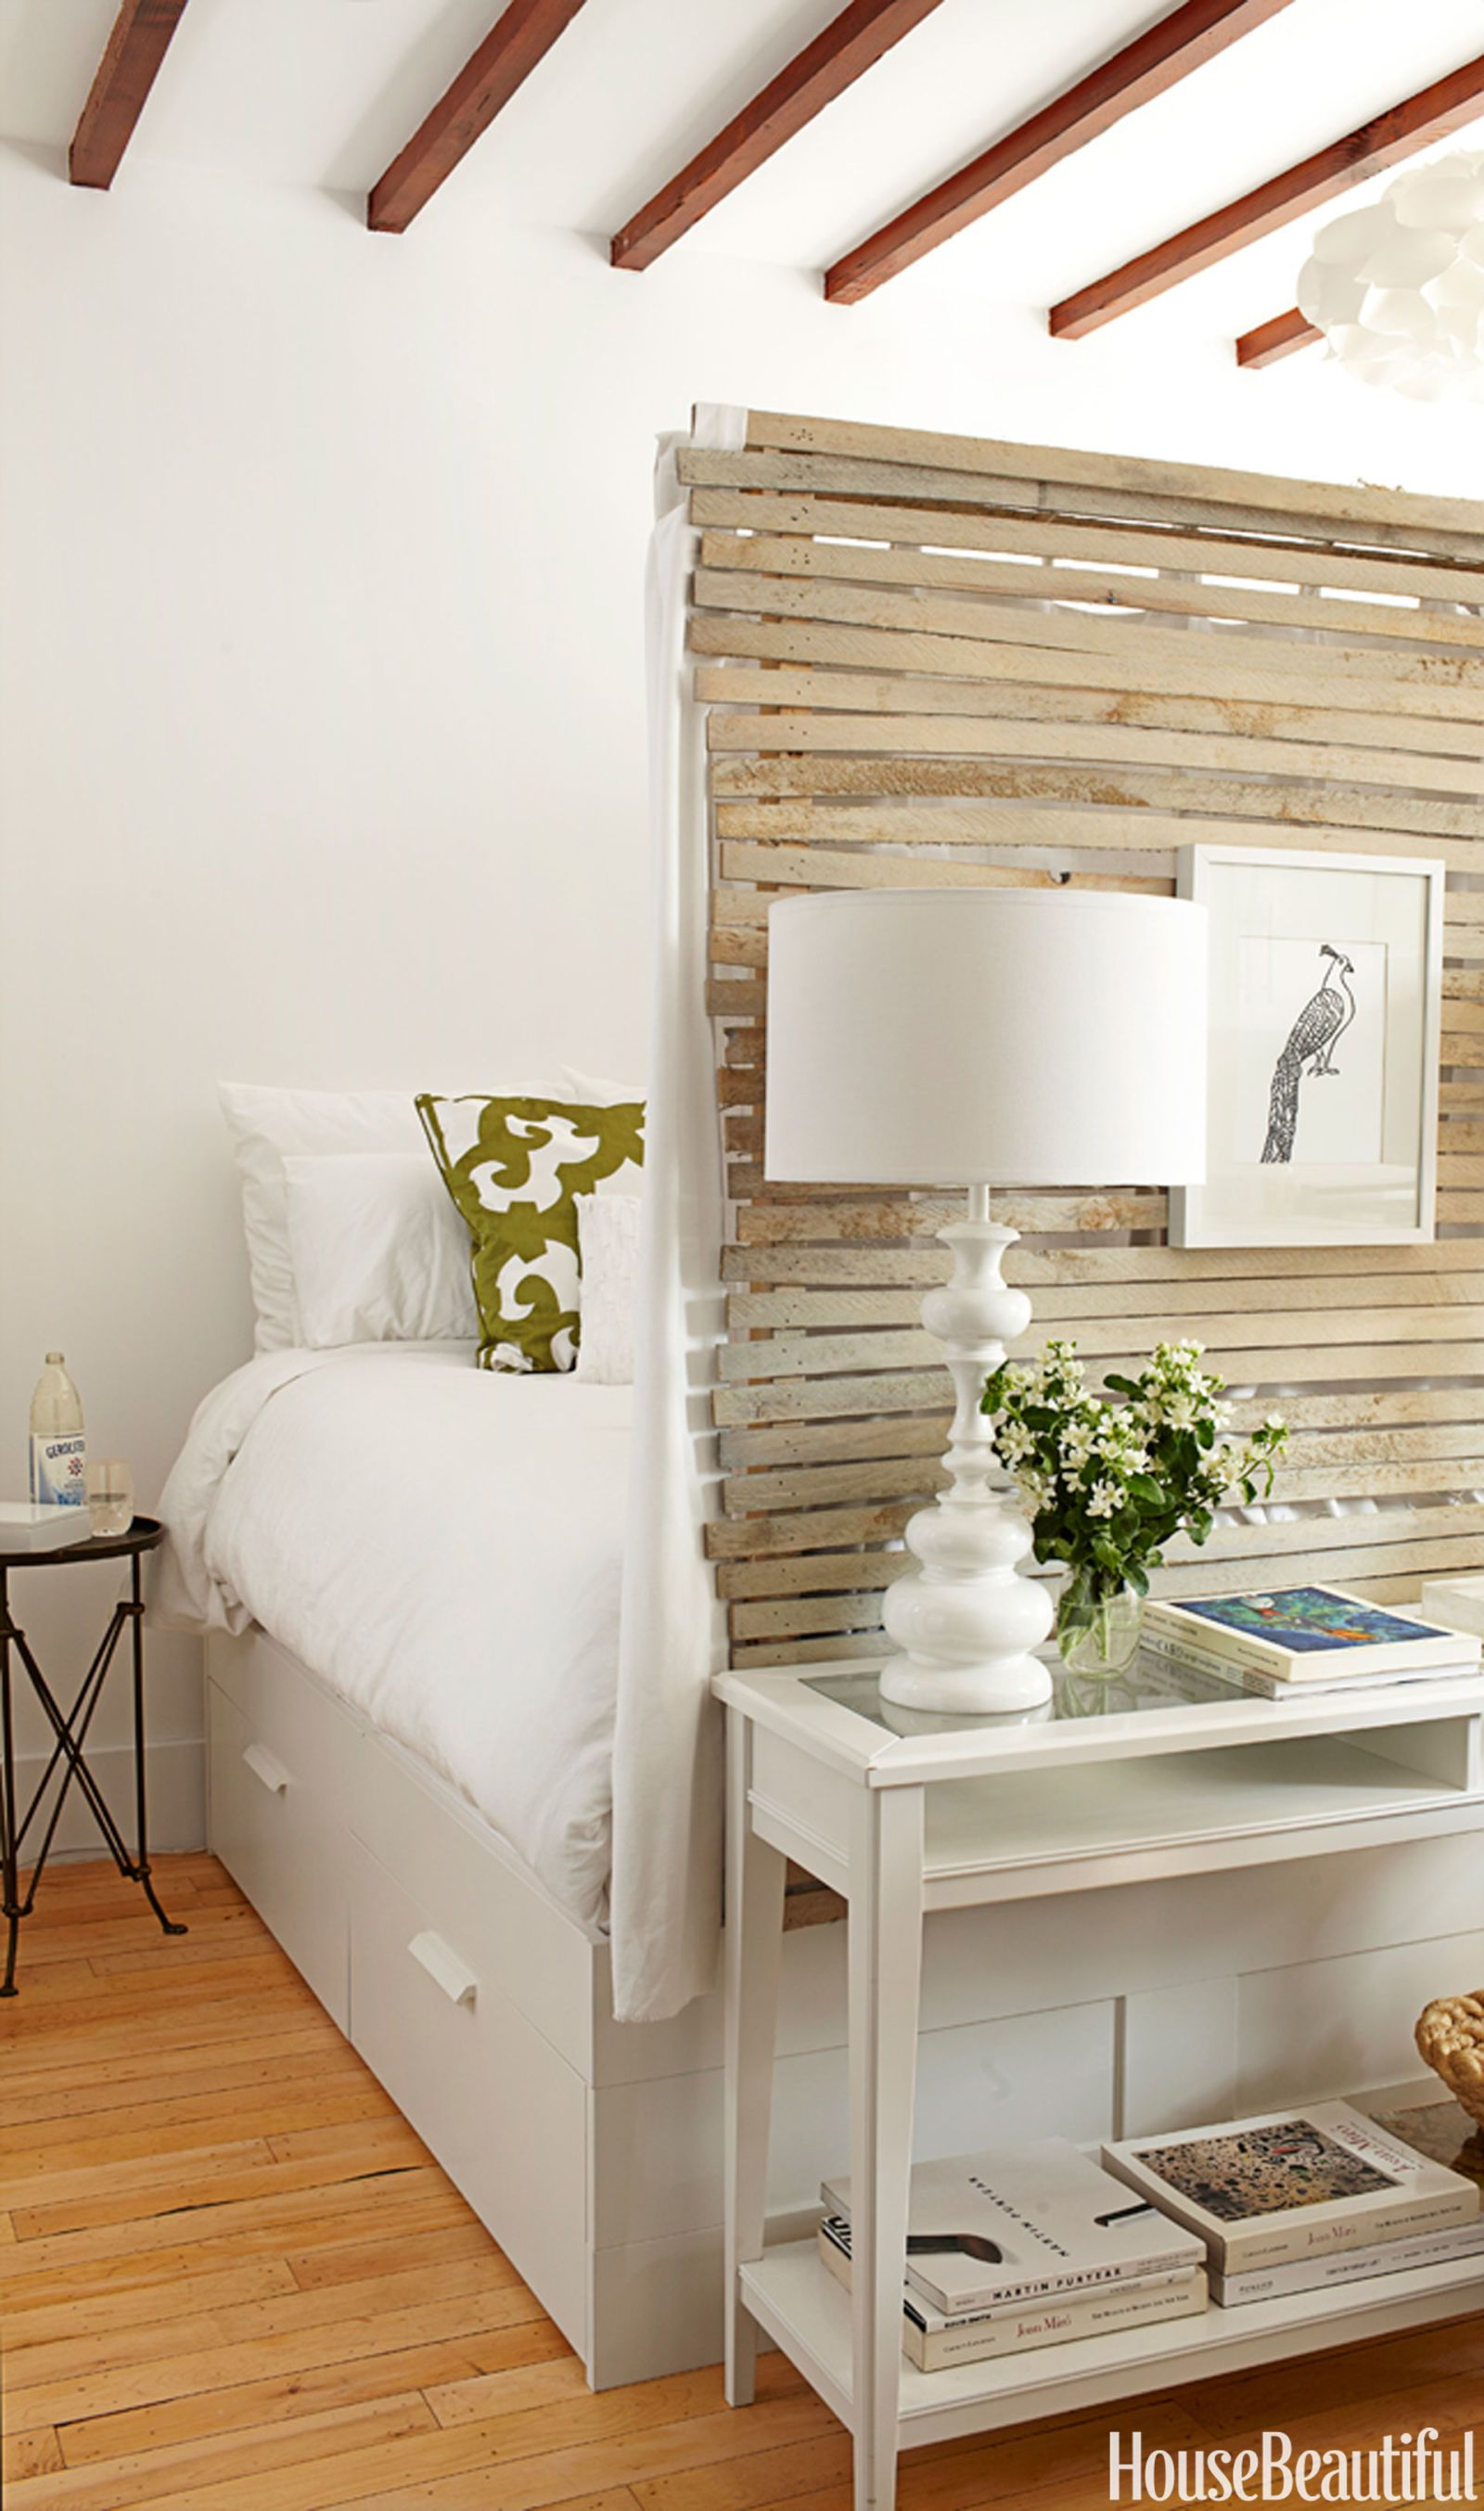 Tara Striano. Bedroom Nook